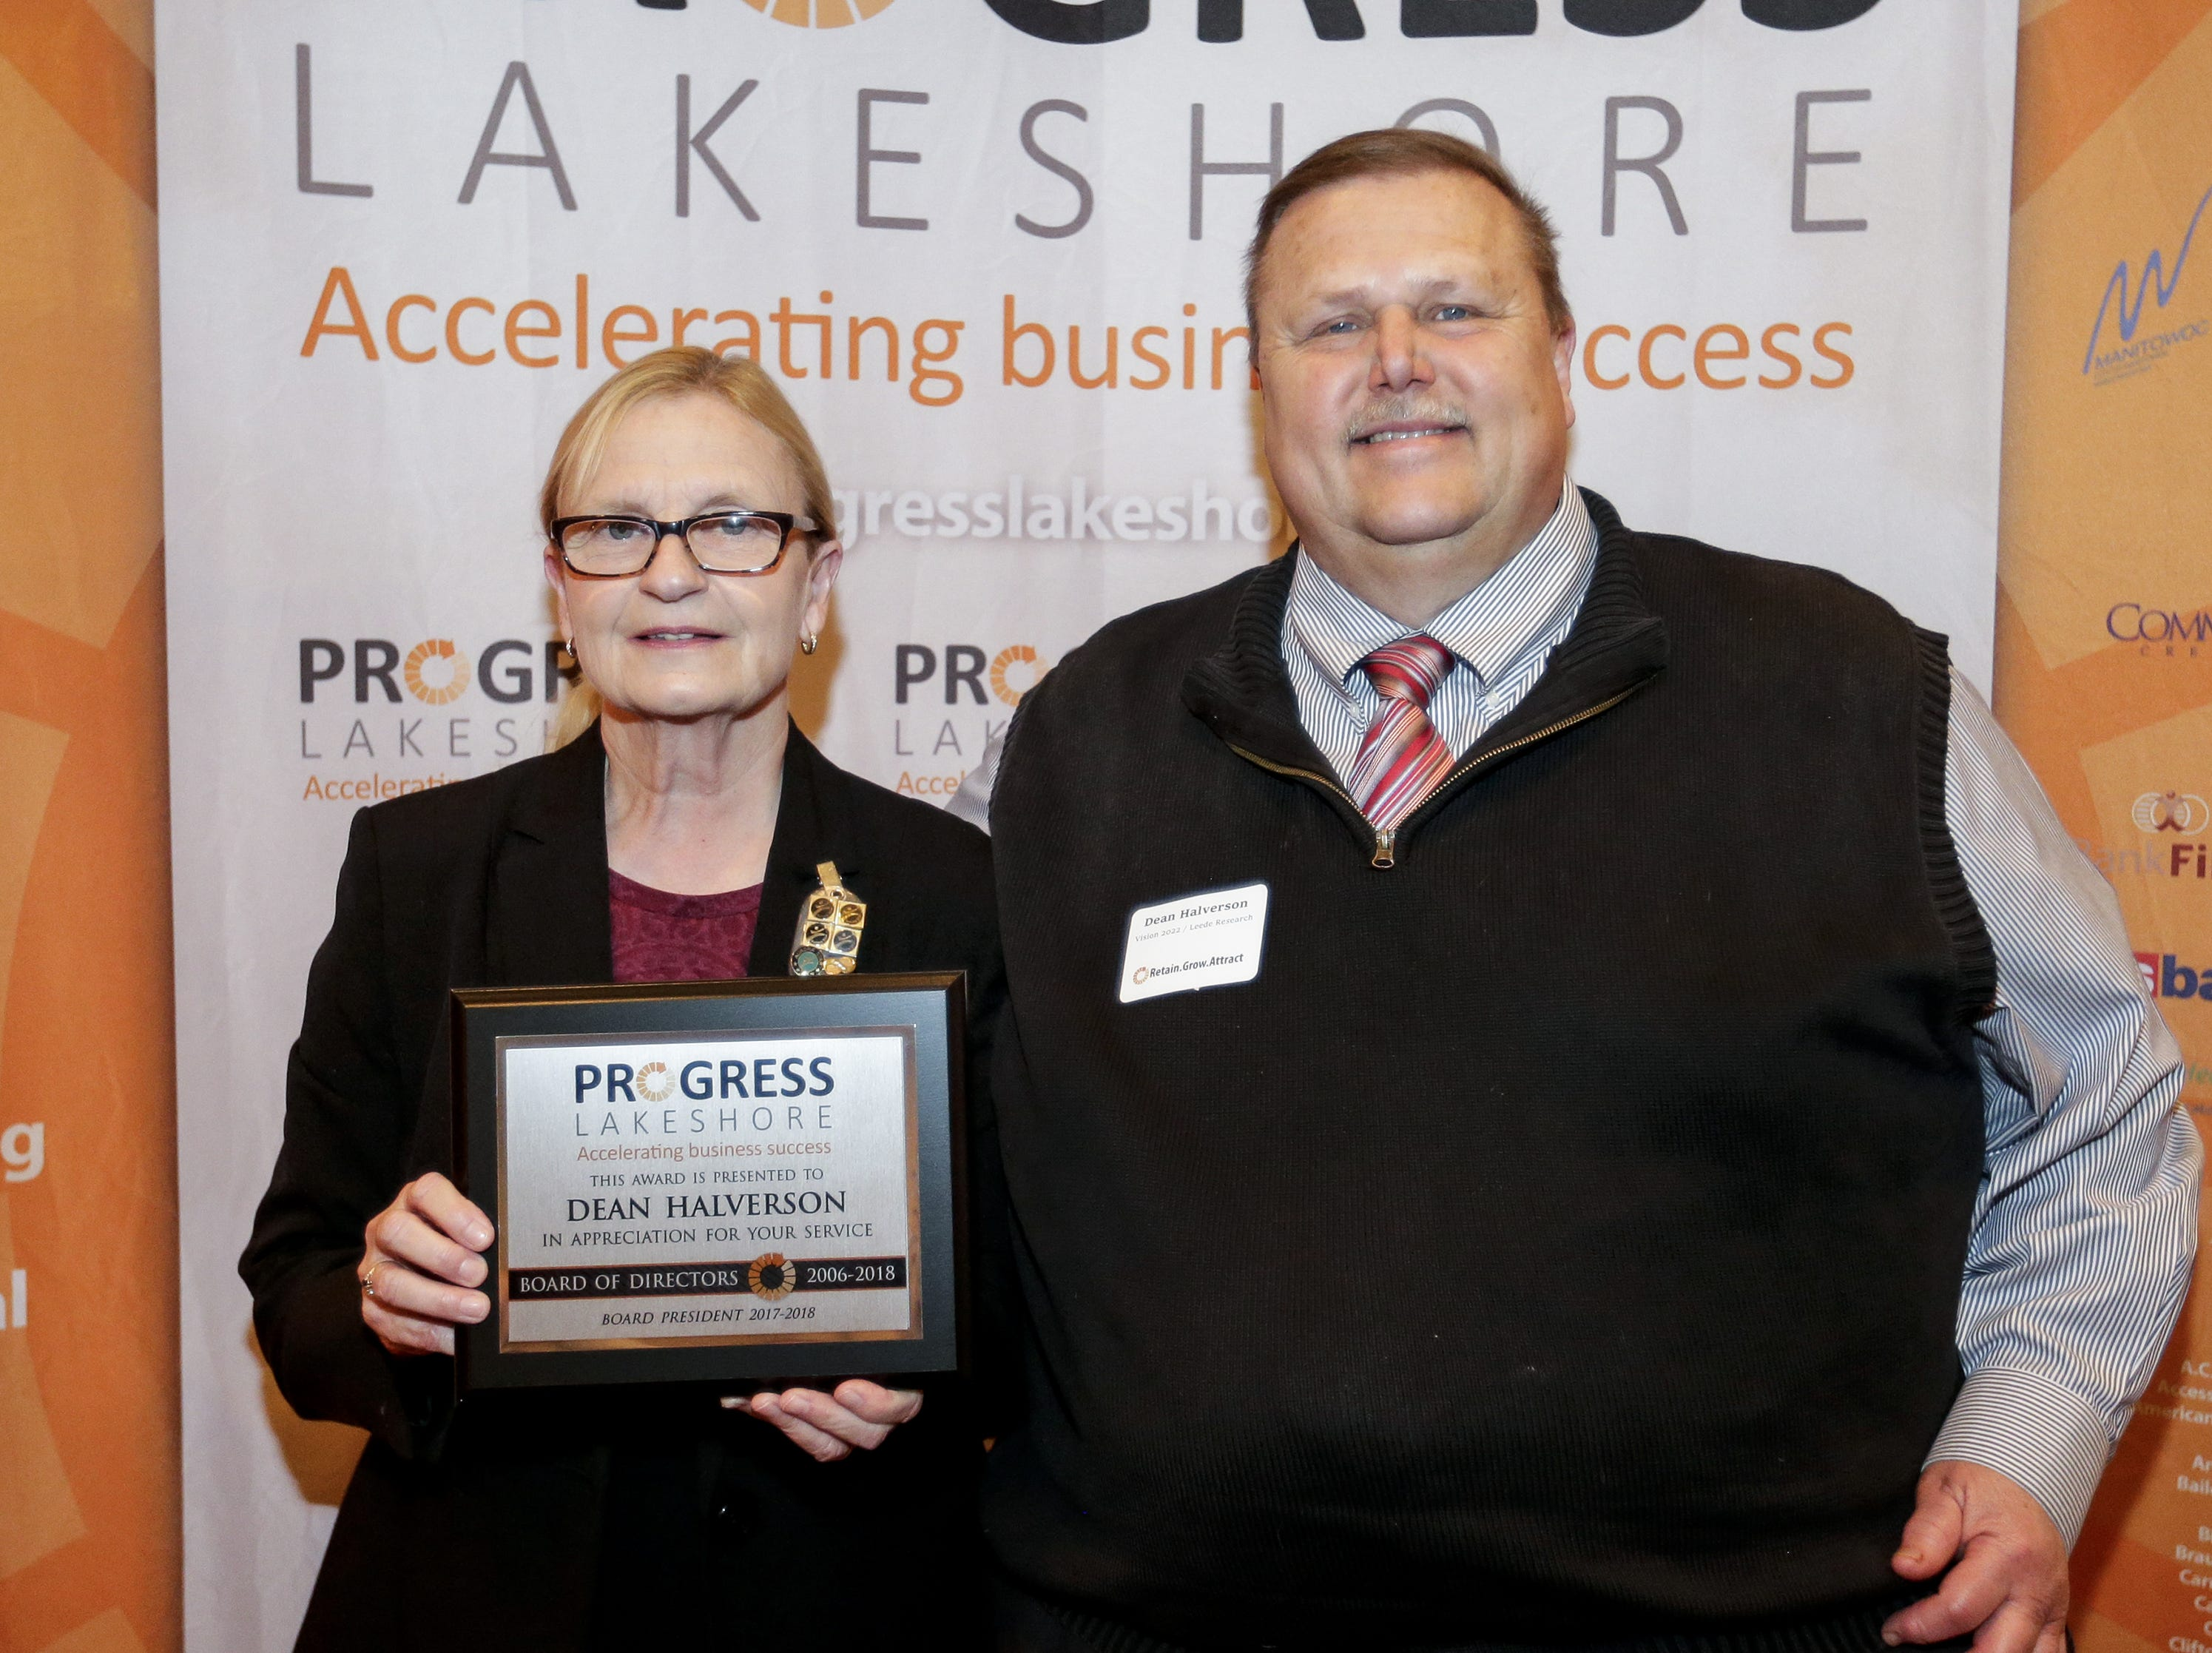 Outgoing Progress Lakeshore board member Dean Halverson is presented an award for his service by President Cathie Kocourek during the Progress Lakeshore Awards Breakfast at the Holiday Inn Tuesday, May 14, 2019, in Manitowoc.